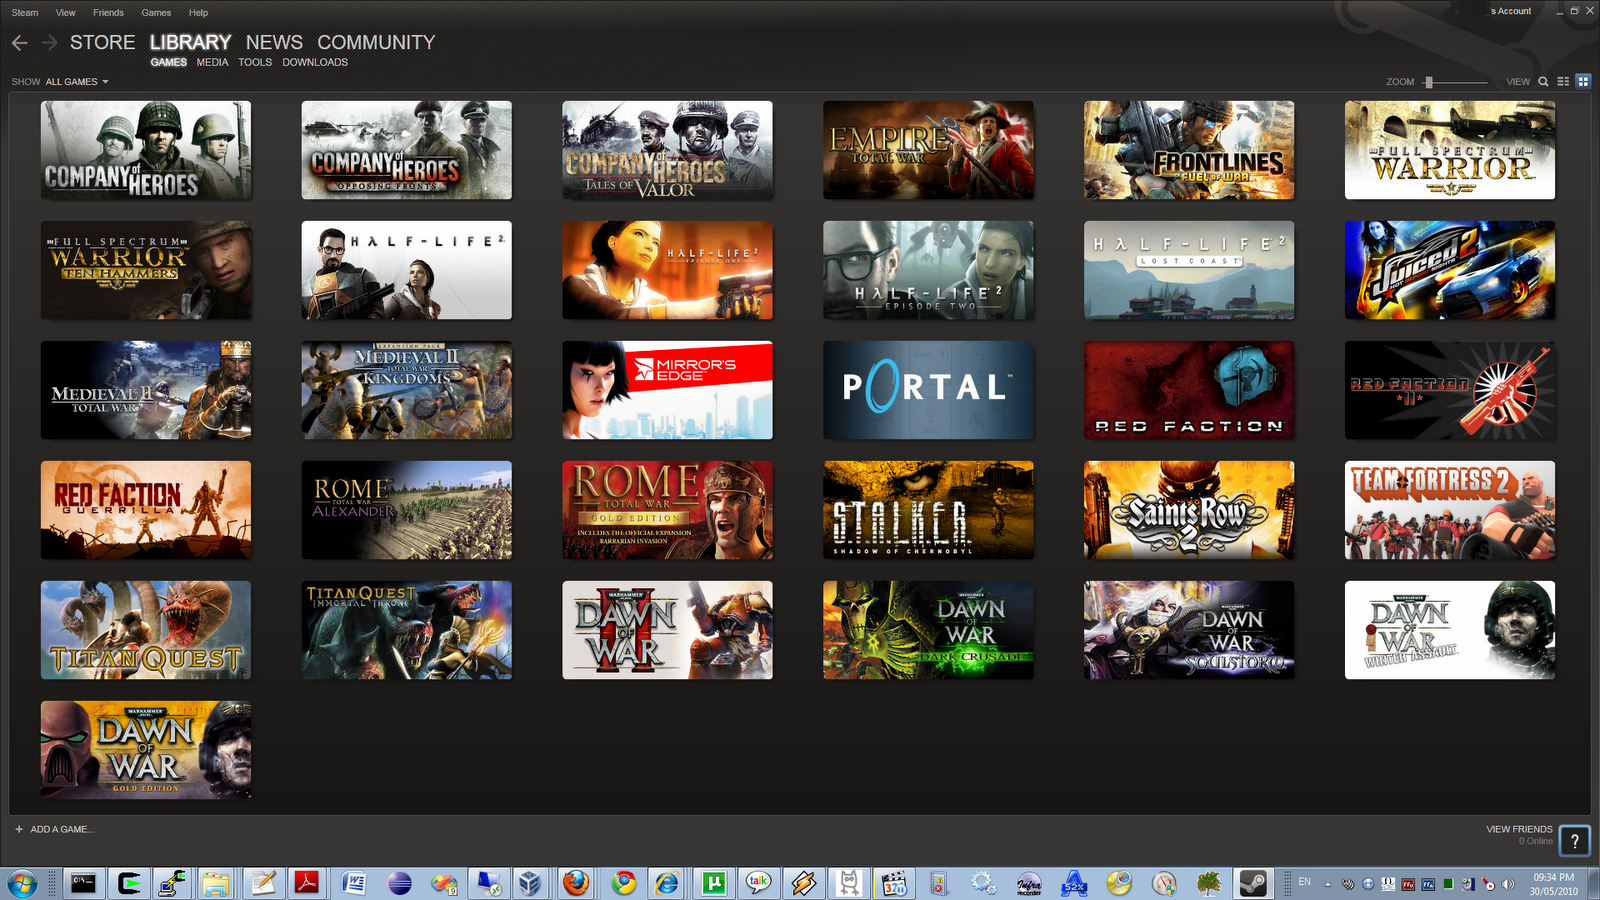 Good Games For Free : S lent weapons for quiet wars my steam games so far